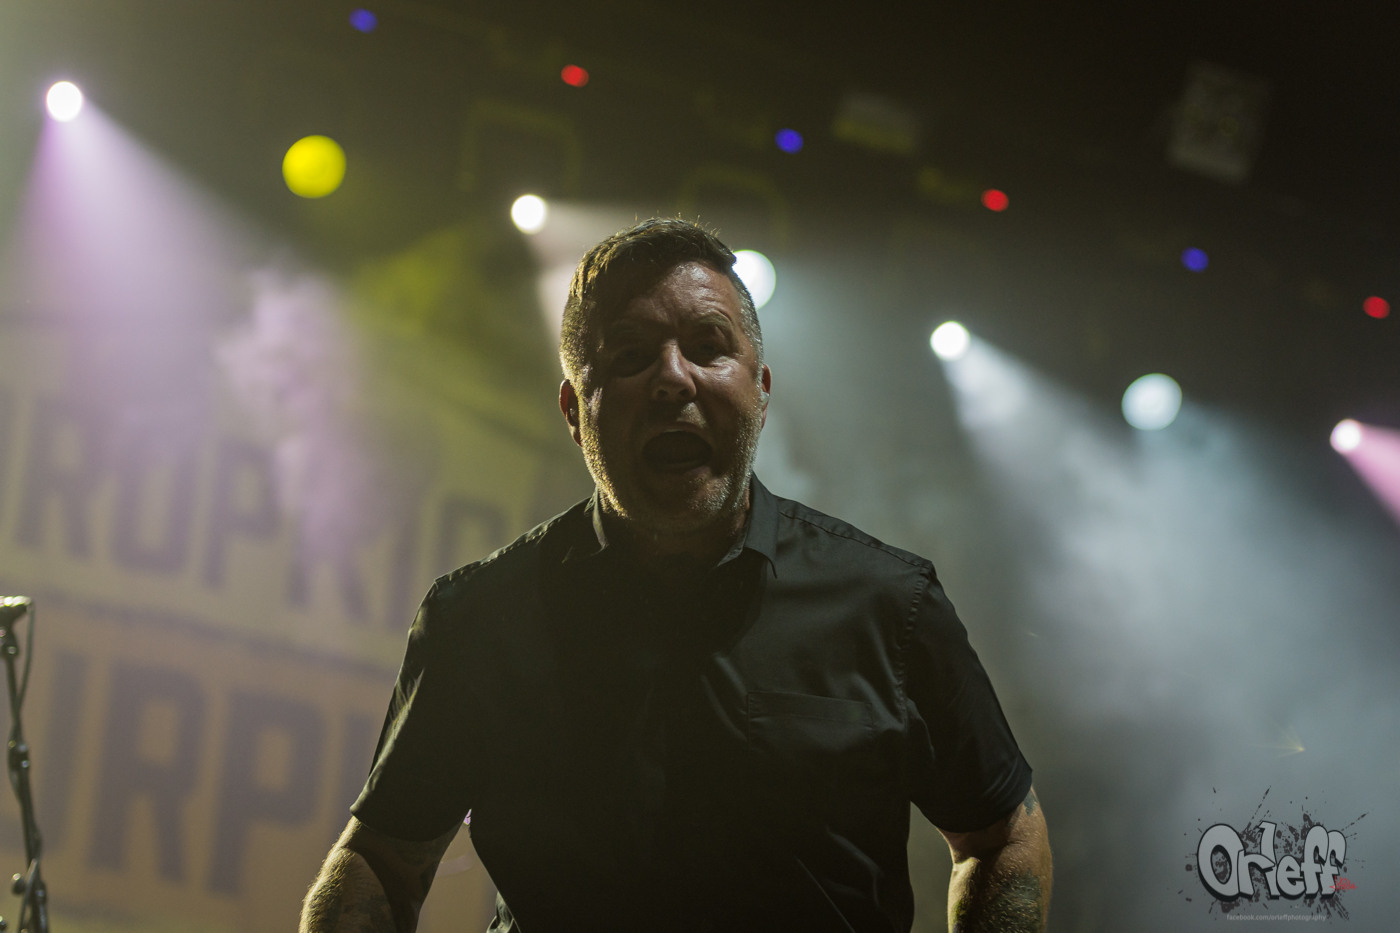 Dropkick Murphys @ Winter Sports Palace, 2019